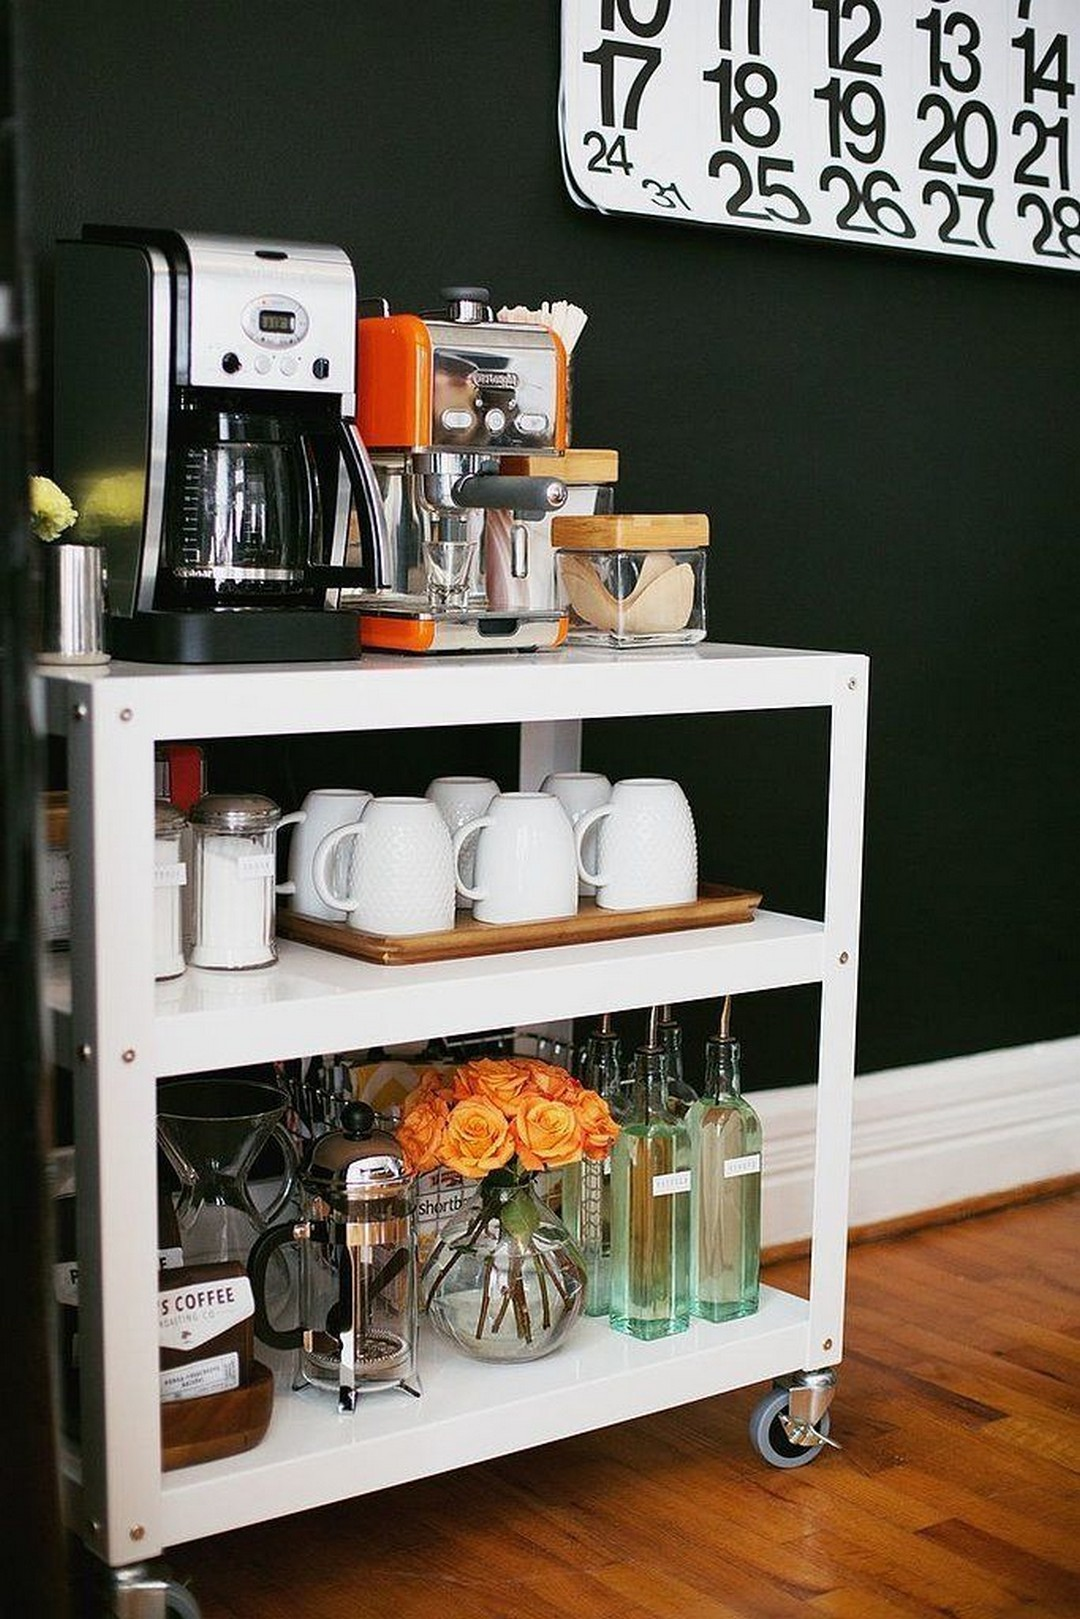 30+ FINEST SMALL APARTMENT ORGANIZATION IDEAS ARE SO INSPIRE